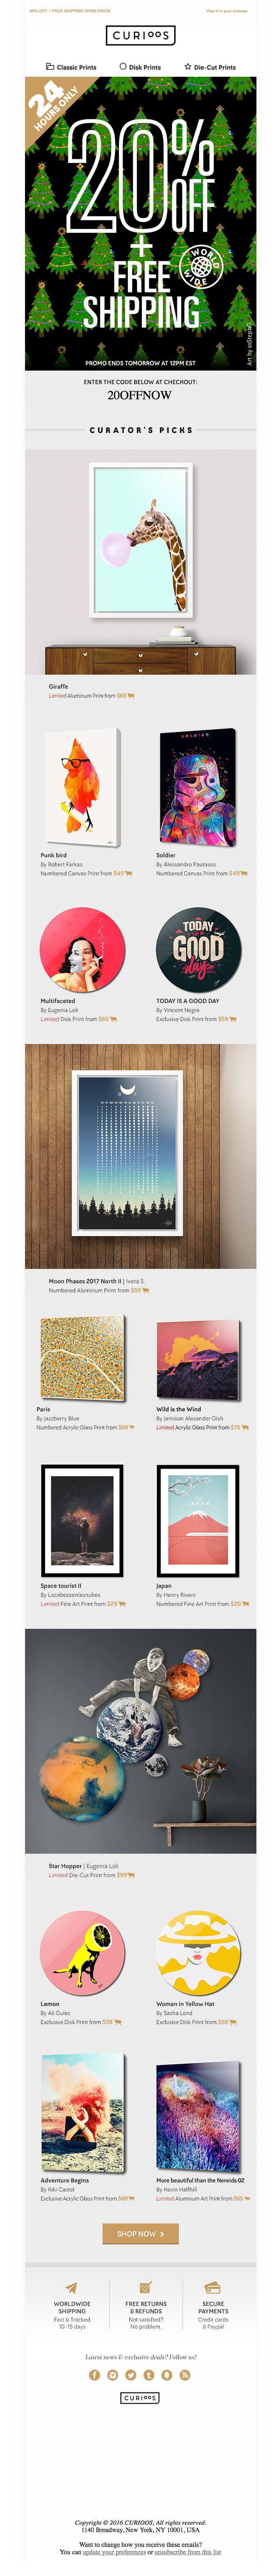 Curioos email example